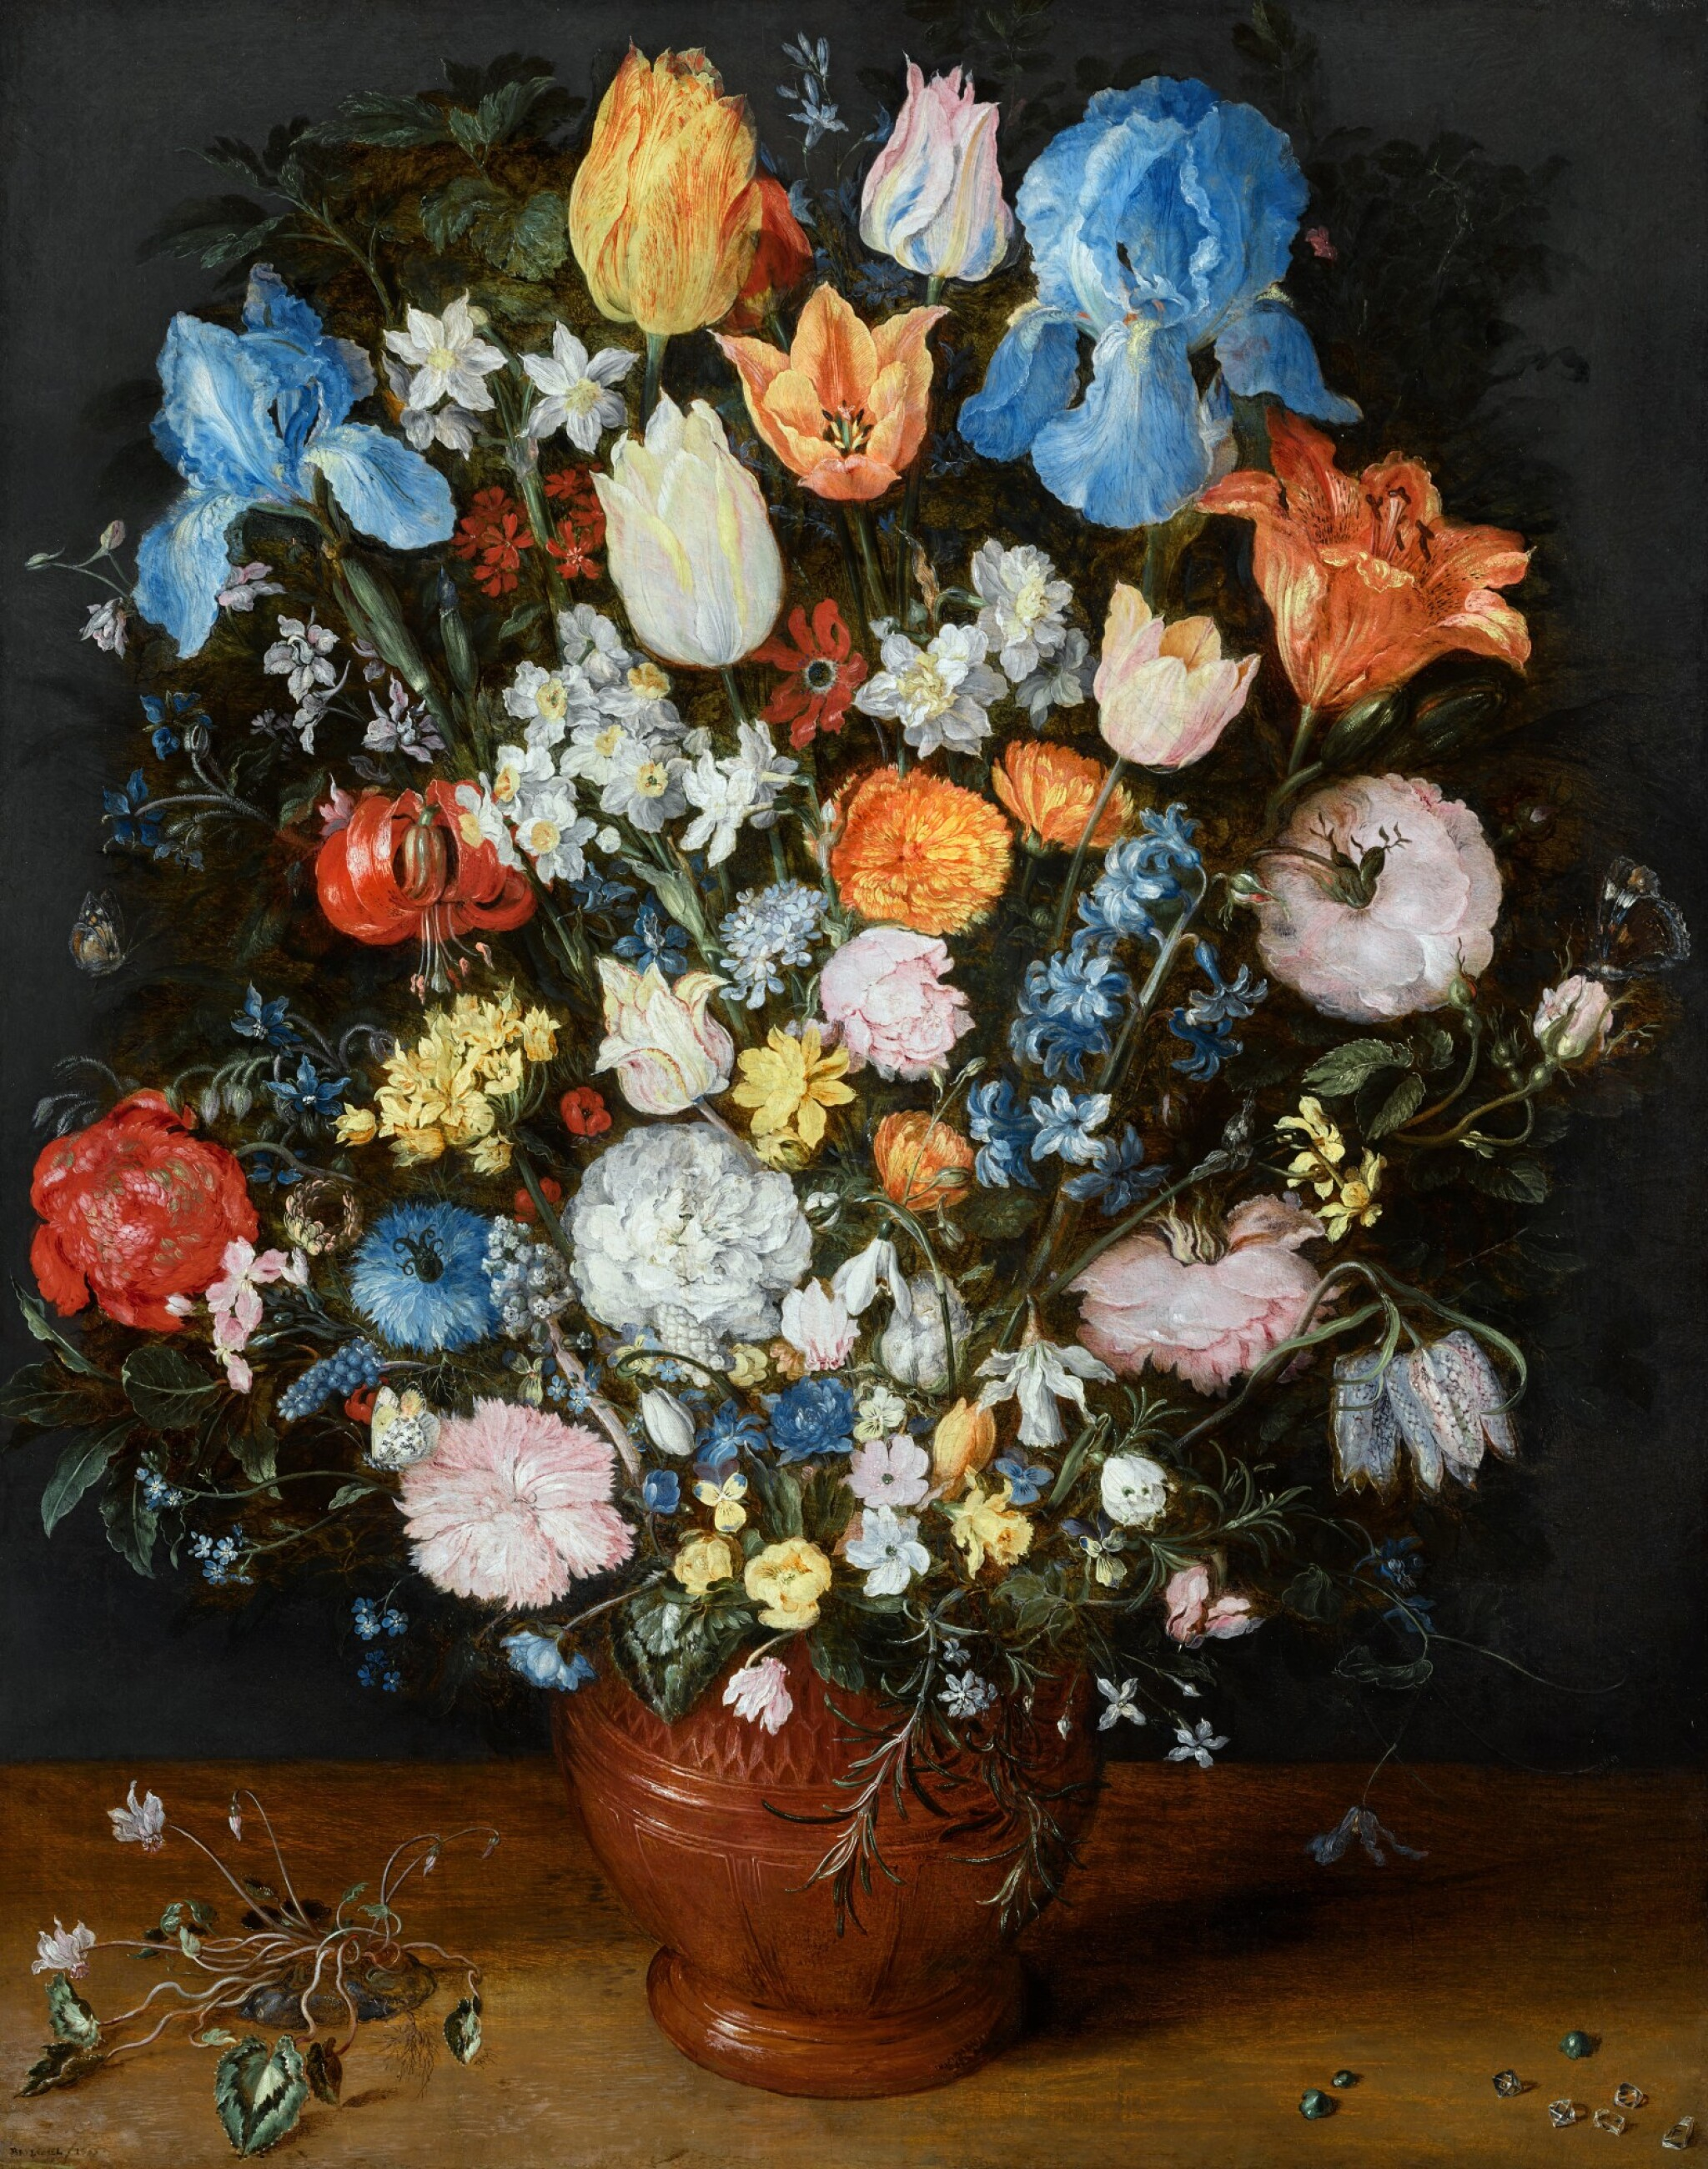 View full screen - View 1 of Lot 13. A lavish still life of many flowers in a terracotta vase resting on a wooden ledge, flanked by a clump of cyclamen and scattered diamonds and sapphires   《靜物:木檯上赤陶瓶中的絢爛花卉,伴一簇仙客來、幾顆鑽石及藍寶石》.